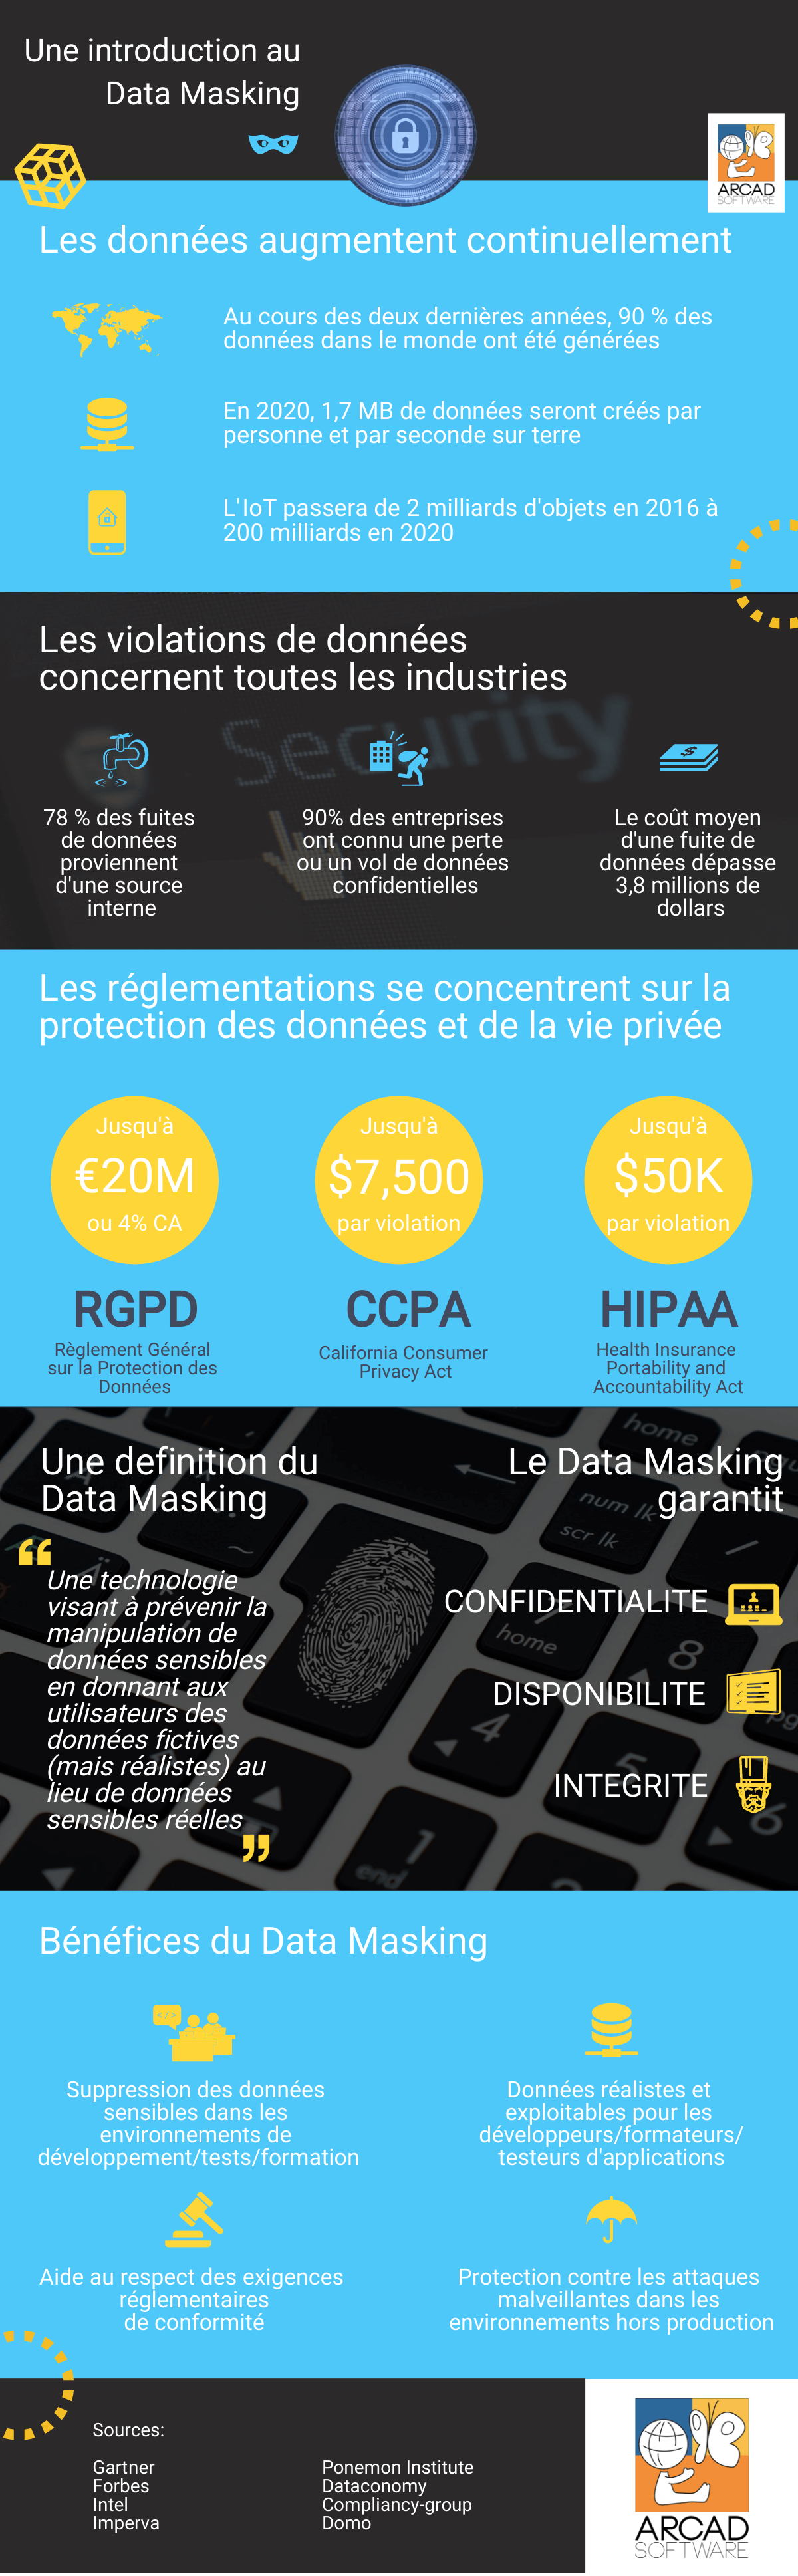 Infographie - Une introduction au Data Masking